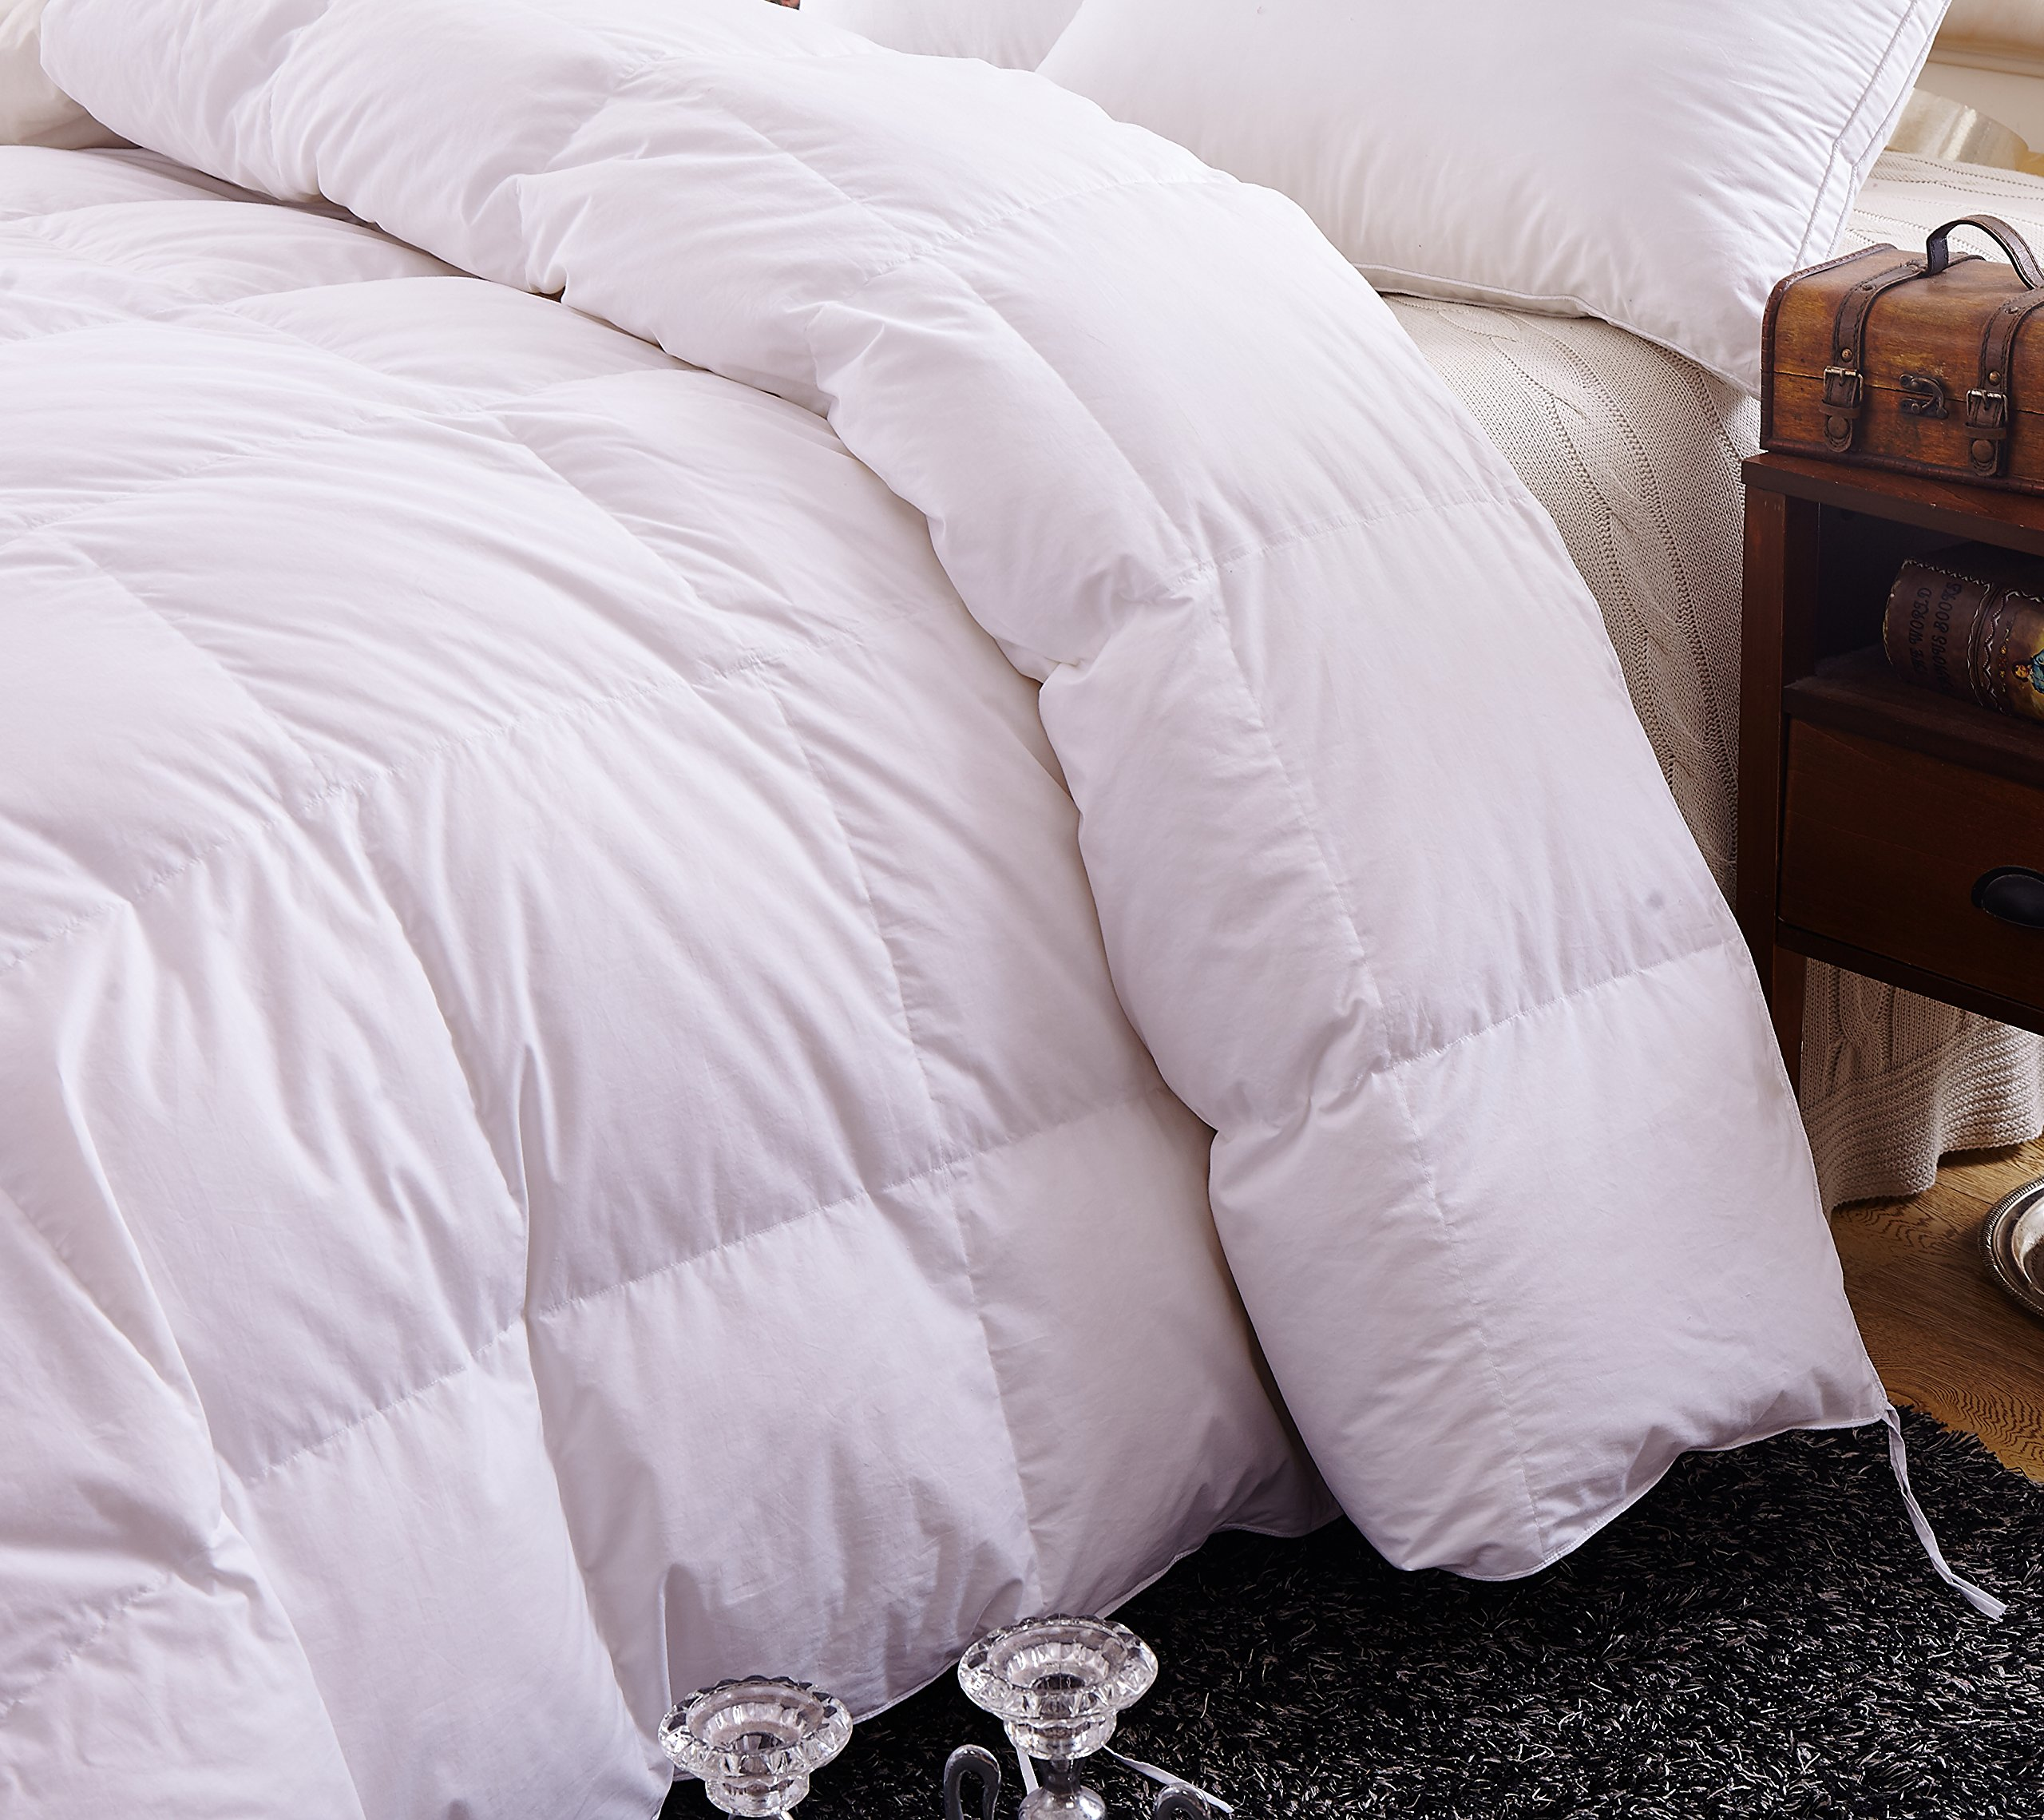 Topsleepy 50% Goose Down and 50% Feather Filling Queen (88-by-88-Inch) Bedding Comforter, White by Topsleepy (Image #2)